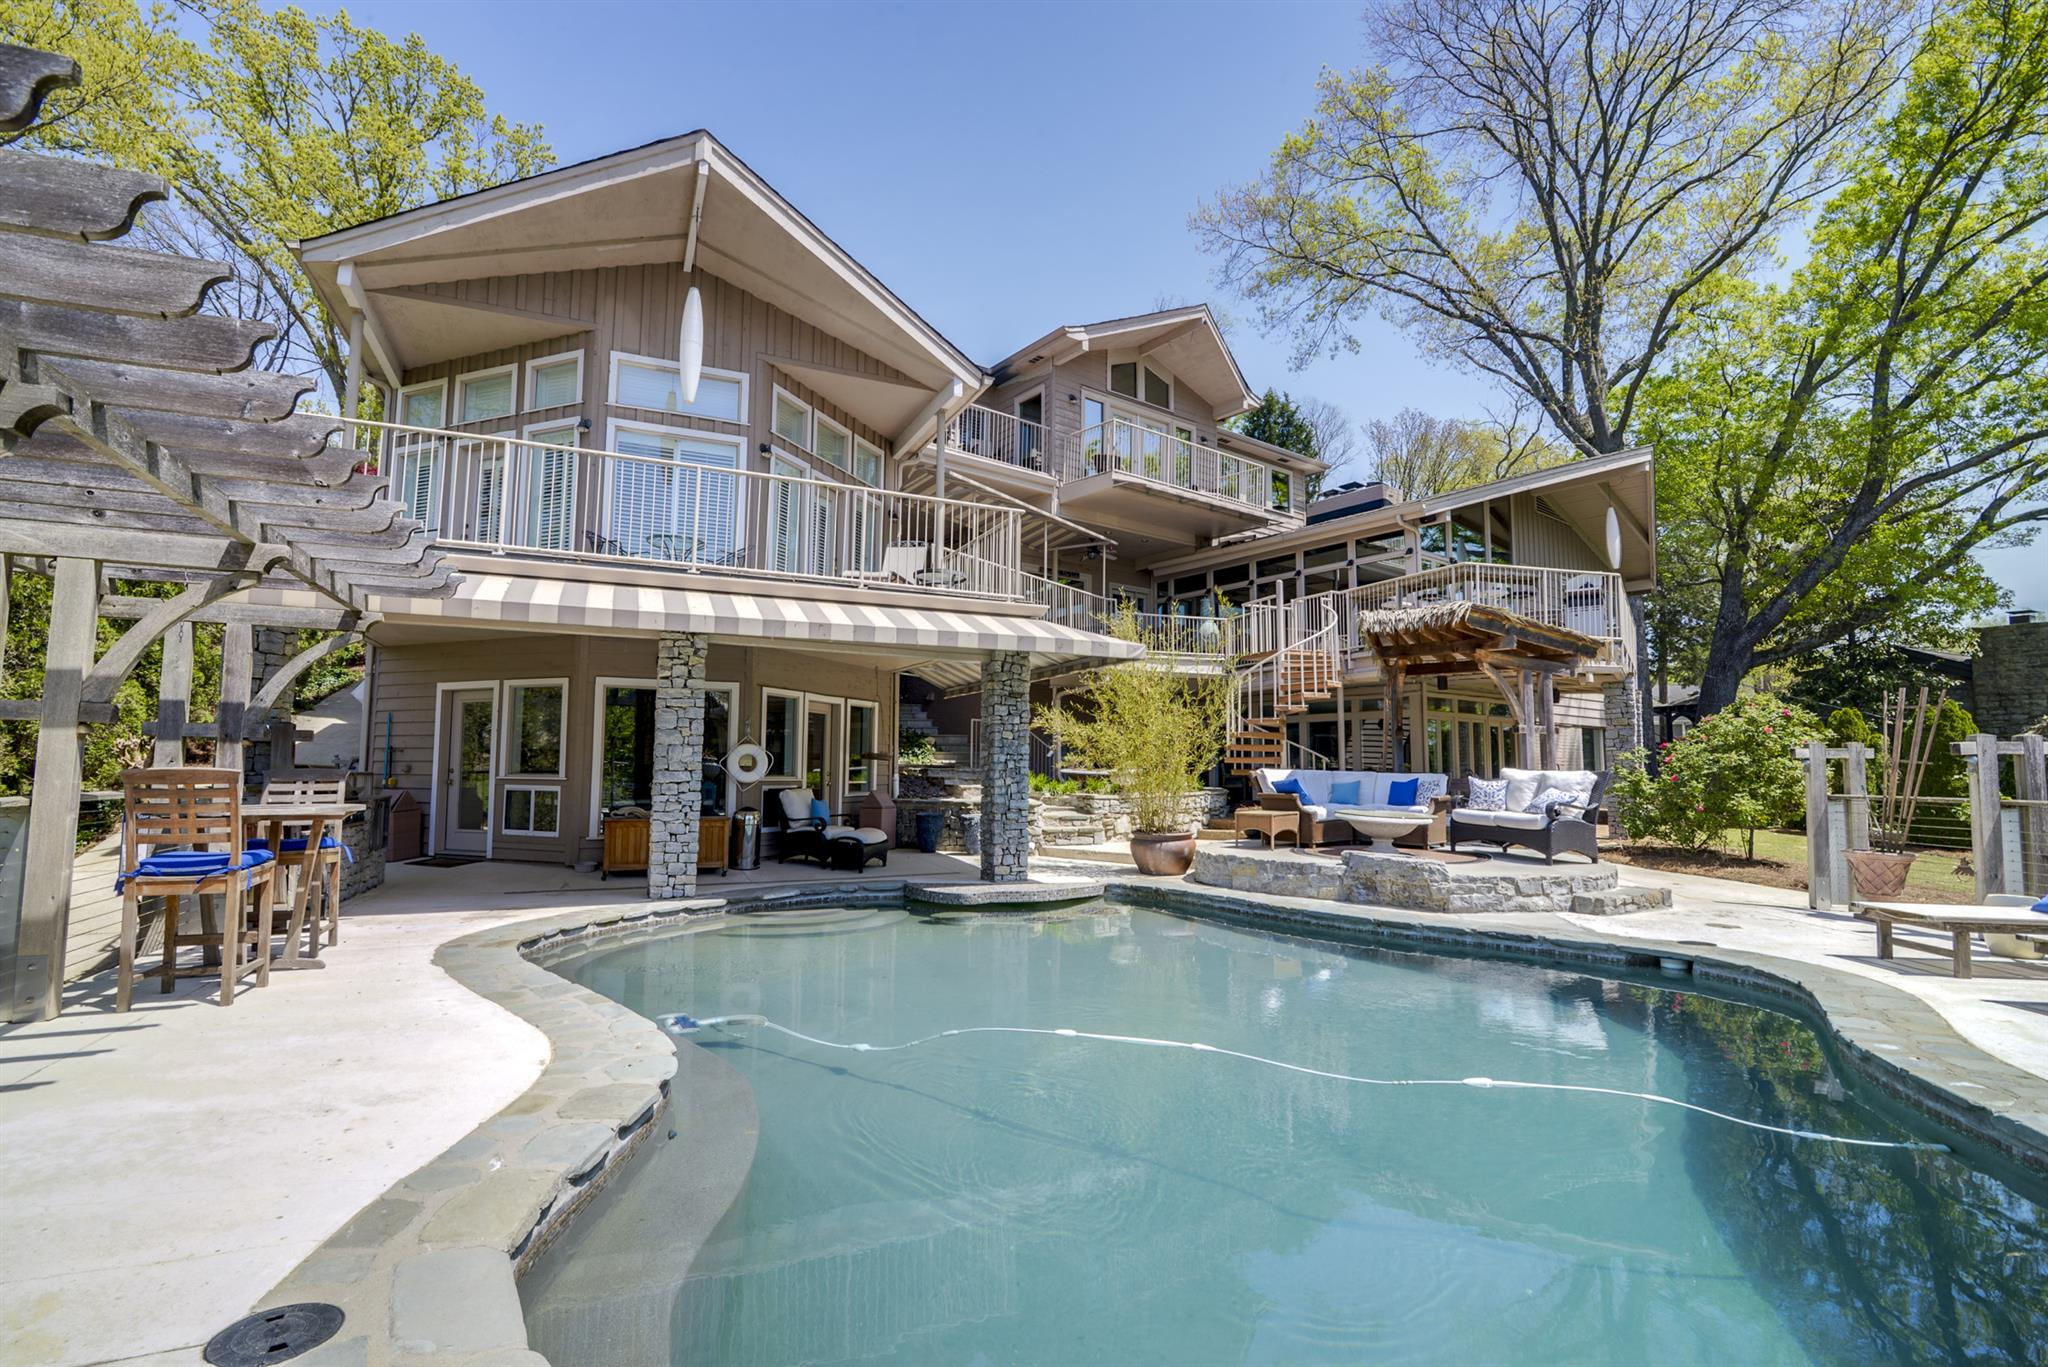 329 Harbor Dr, Old Hickory, TN